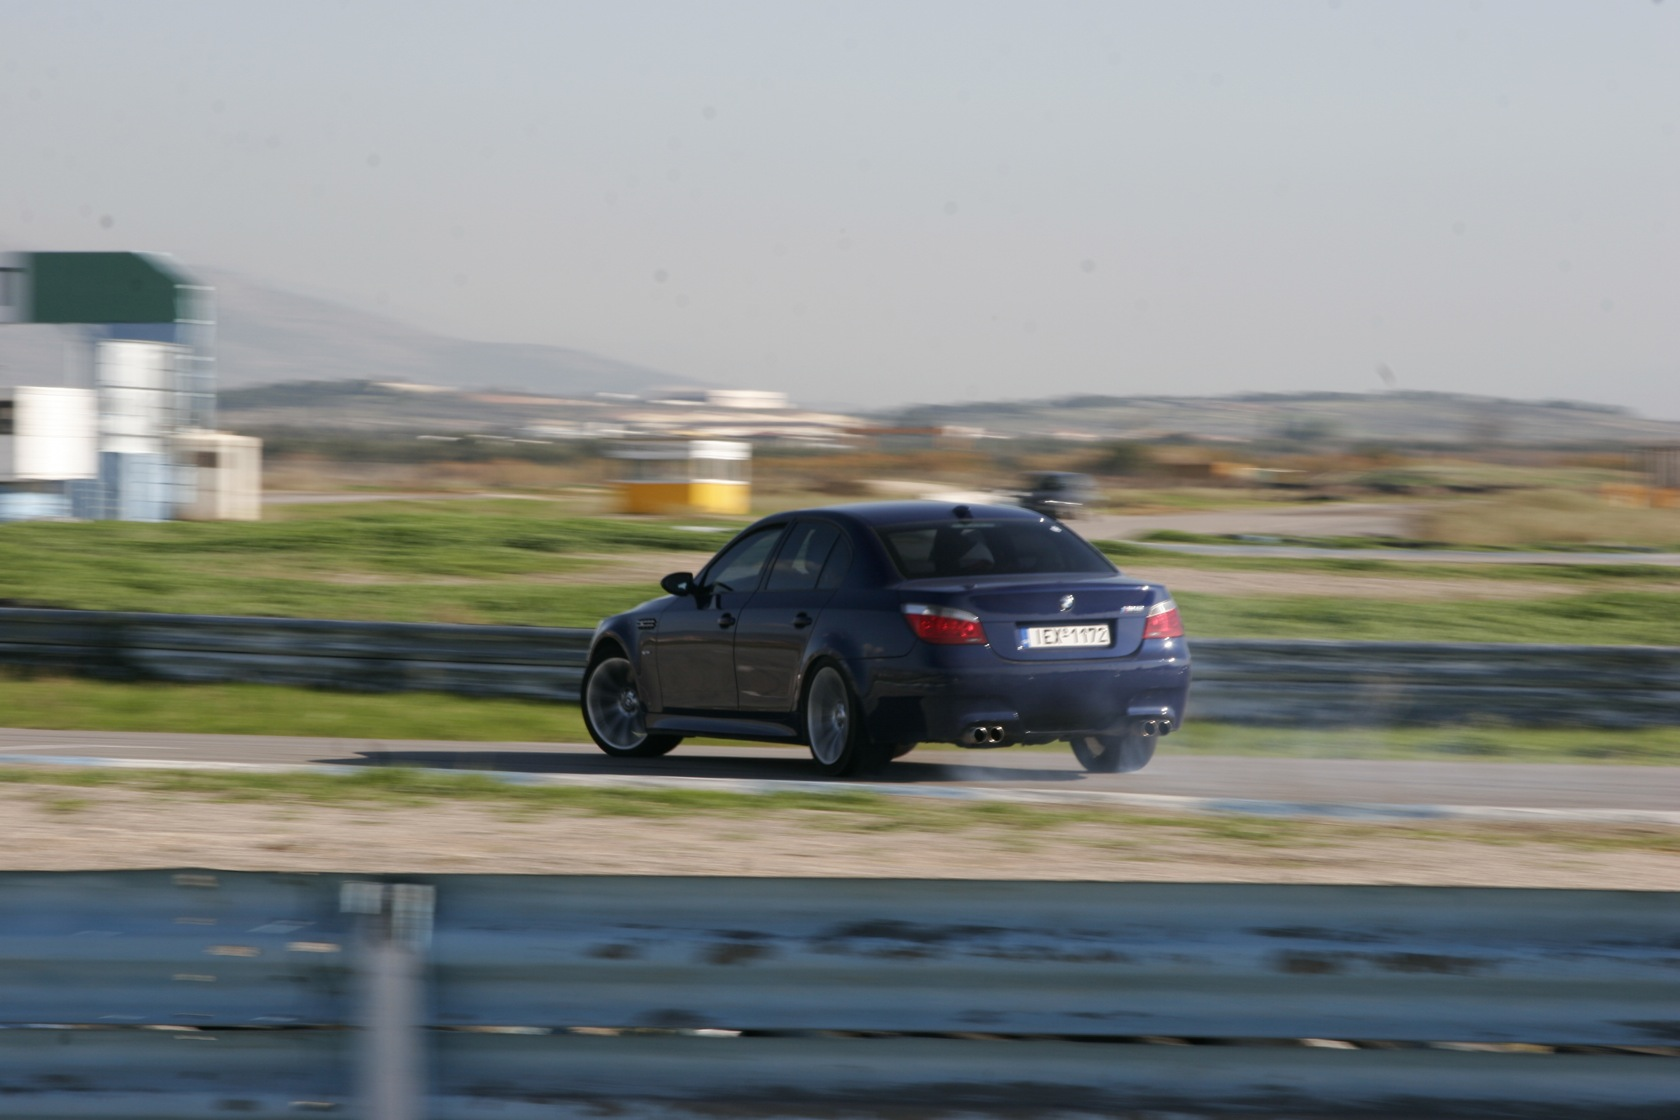 BMW M5 E60 images can be